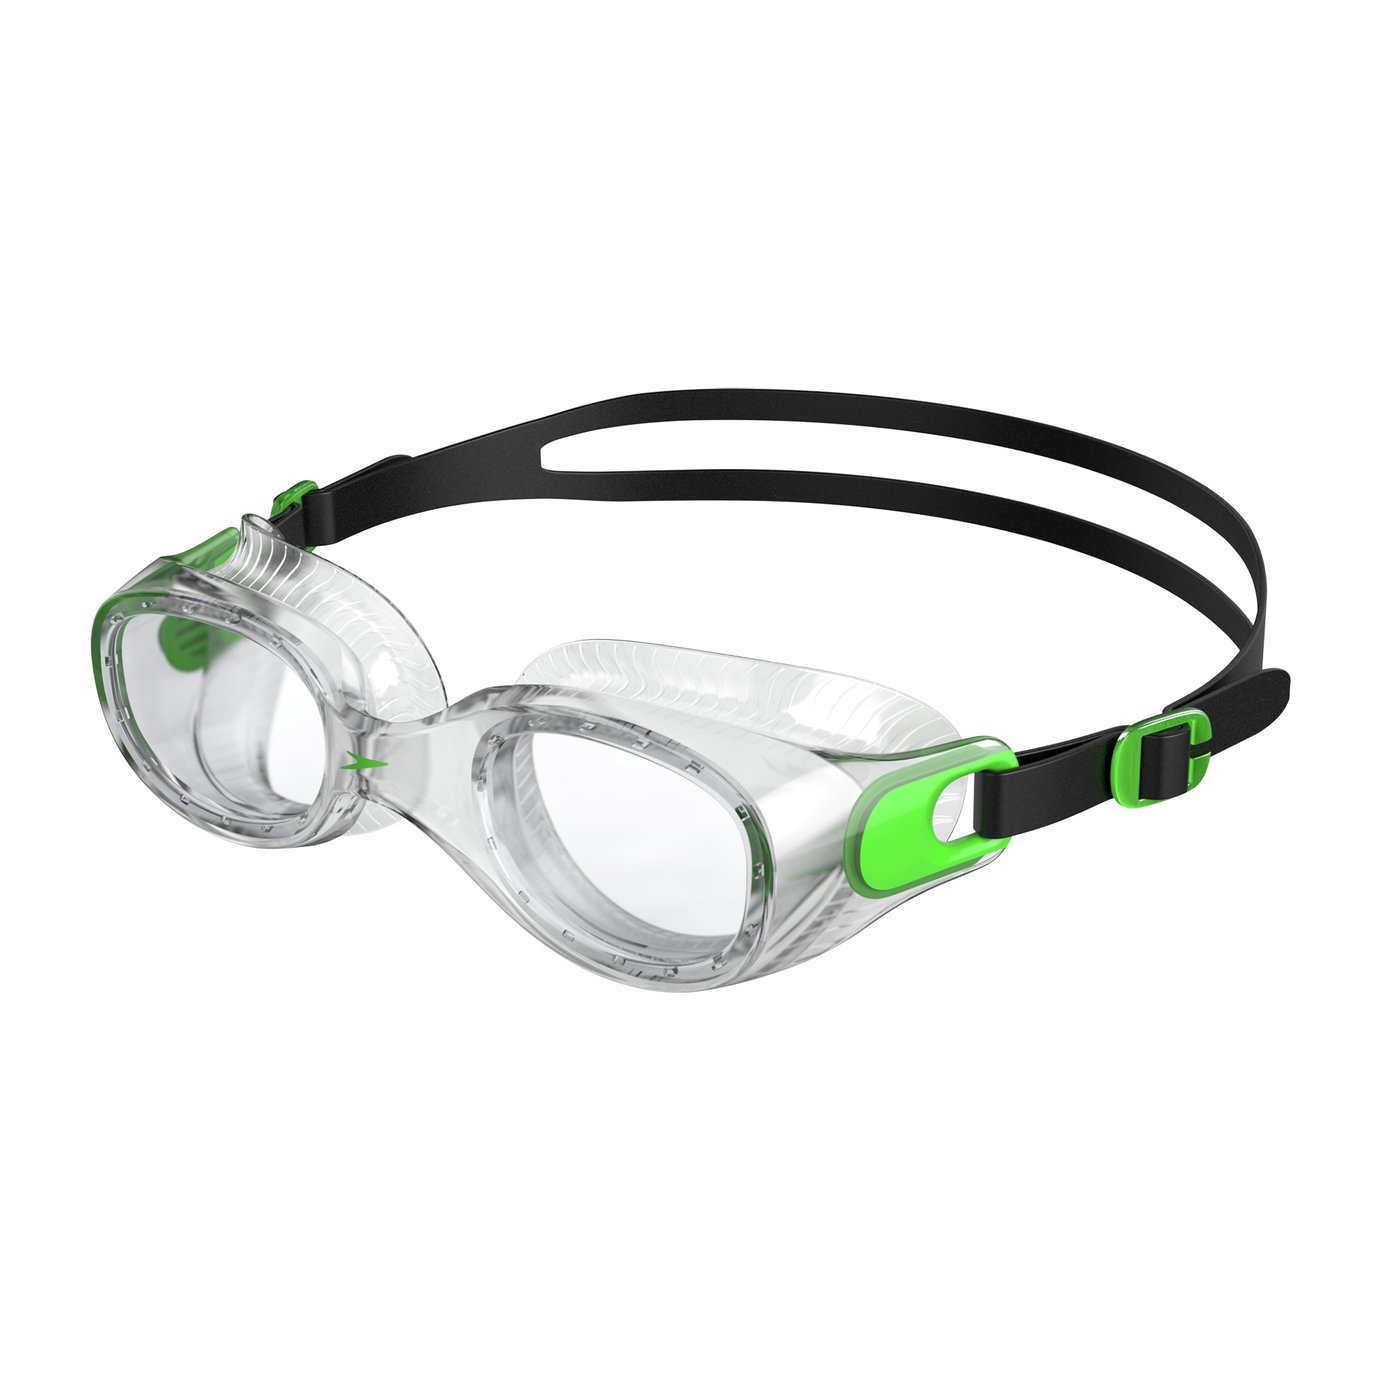 Speedo Futura Classic Goggles - Green & Clear from speedo